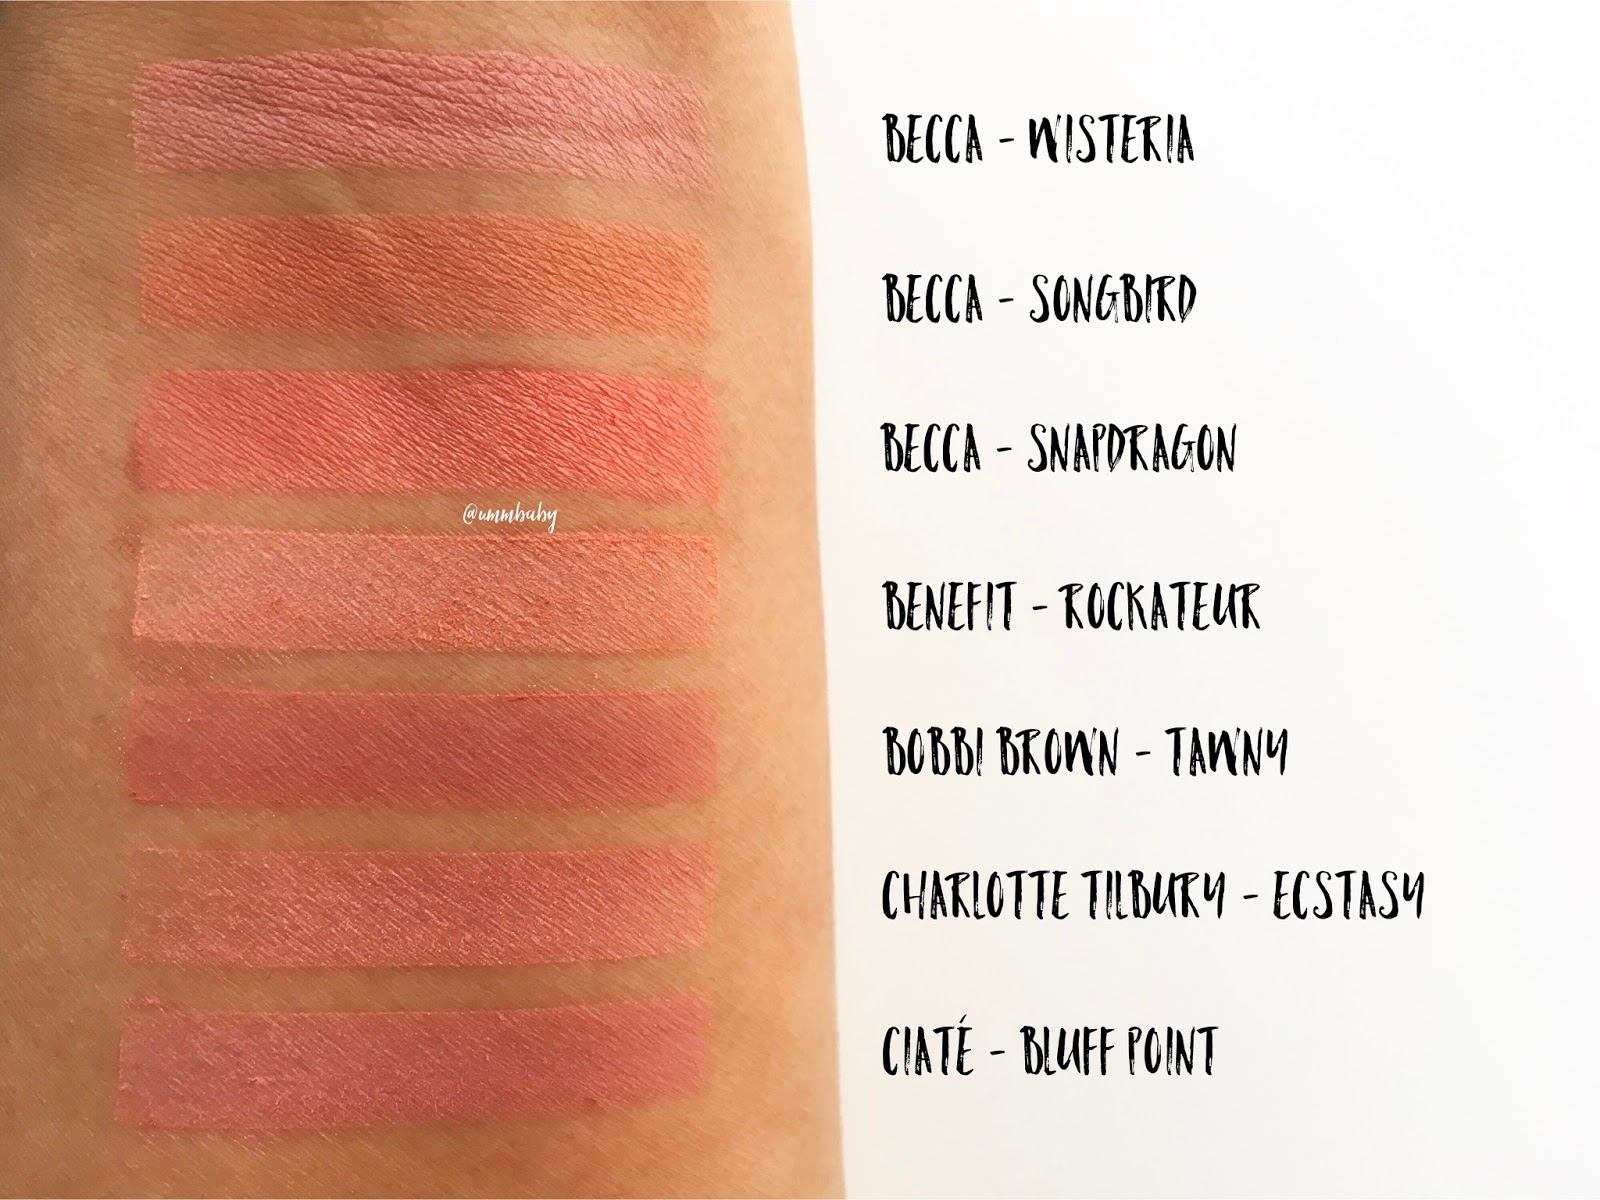 makeup swatches, blusher swatches, becca wisteria swatch, becca songbird swatch, becca snapdragon swatch, benefit rockateur medium skin swatch, bobbi brown tawny blusher swatch, nc40 swatch, charlotte tilbury ecstasy swatch, ciate bluff point swatch